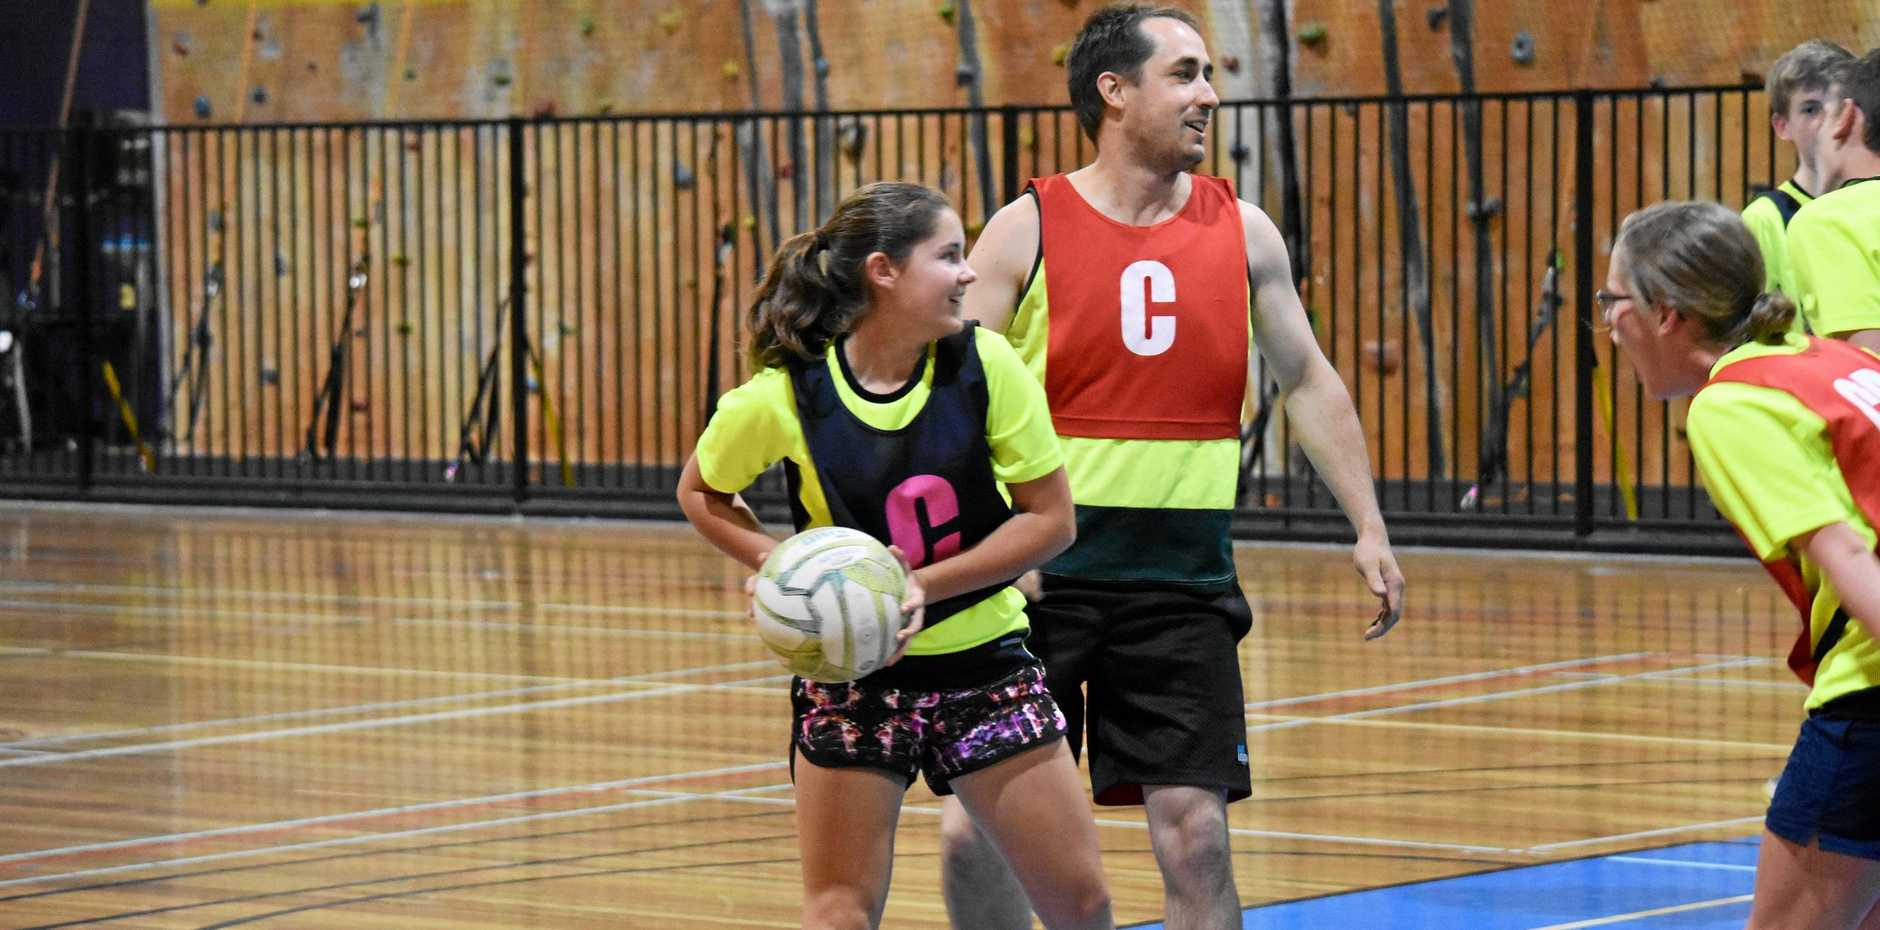 CENTRE COURT: Sophie Waples, pictured in mixed netball at WIRAC, was one of the stars in this week's ladies' round.